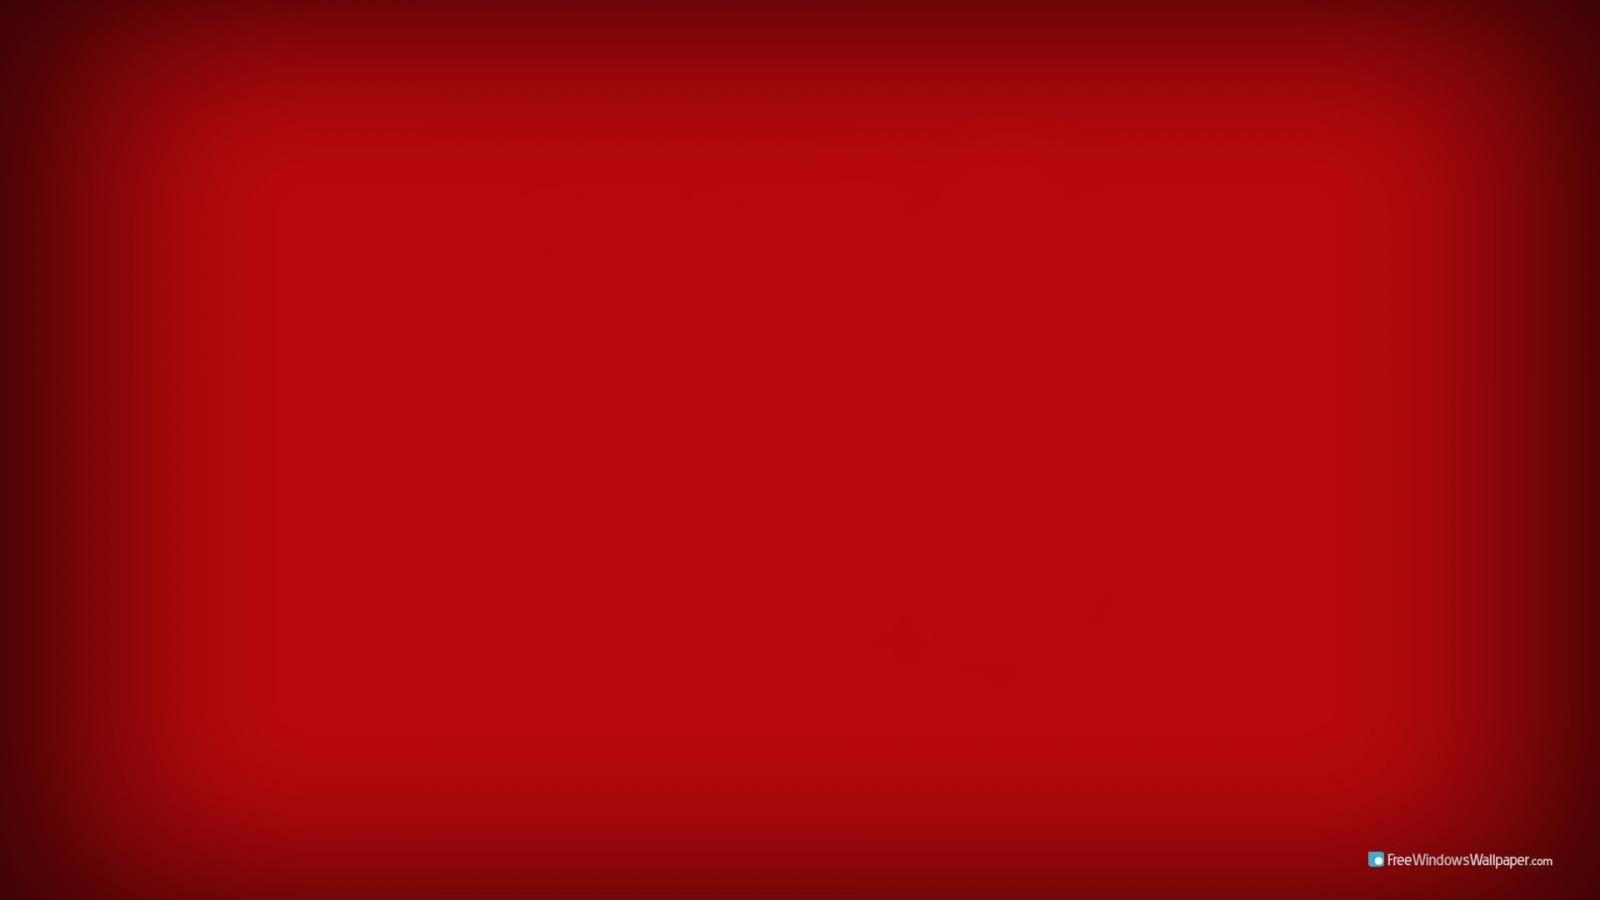 1600x900 | Red Computer Wallpaper | Solid Red Wallpaper